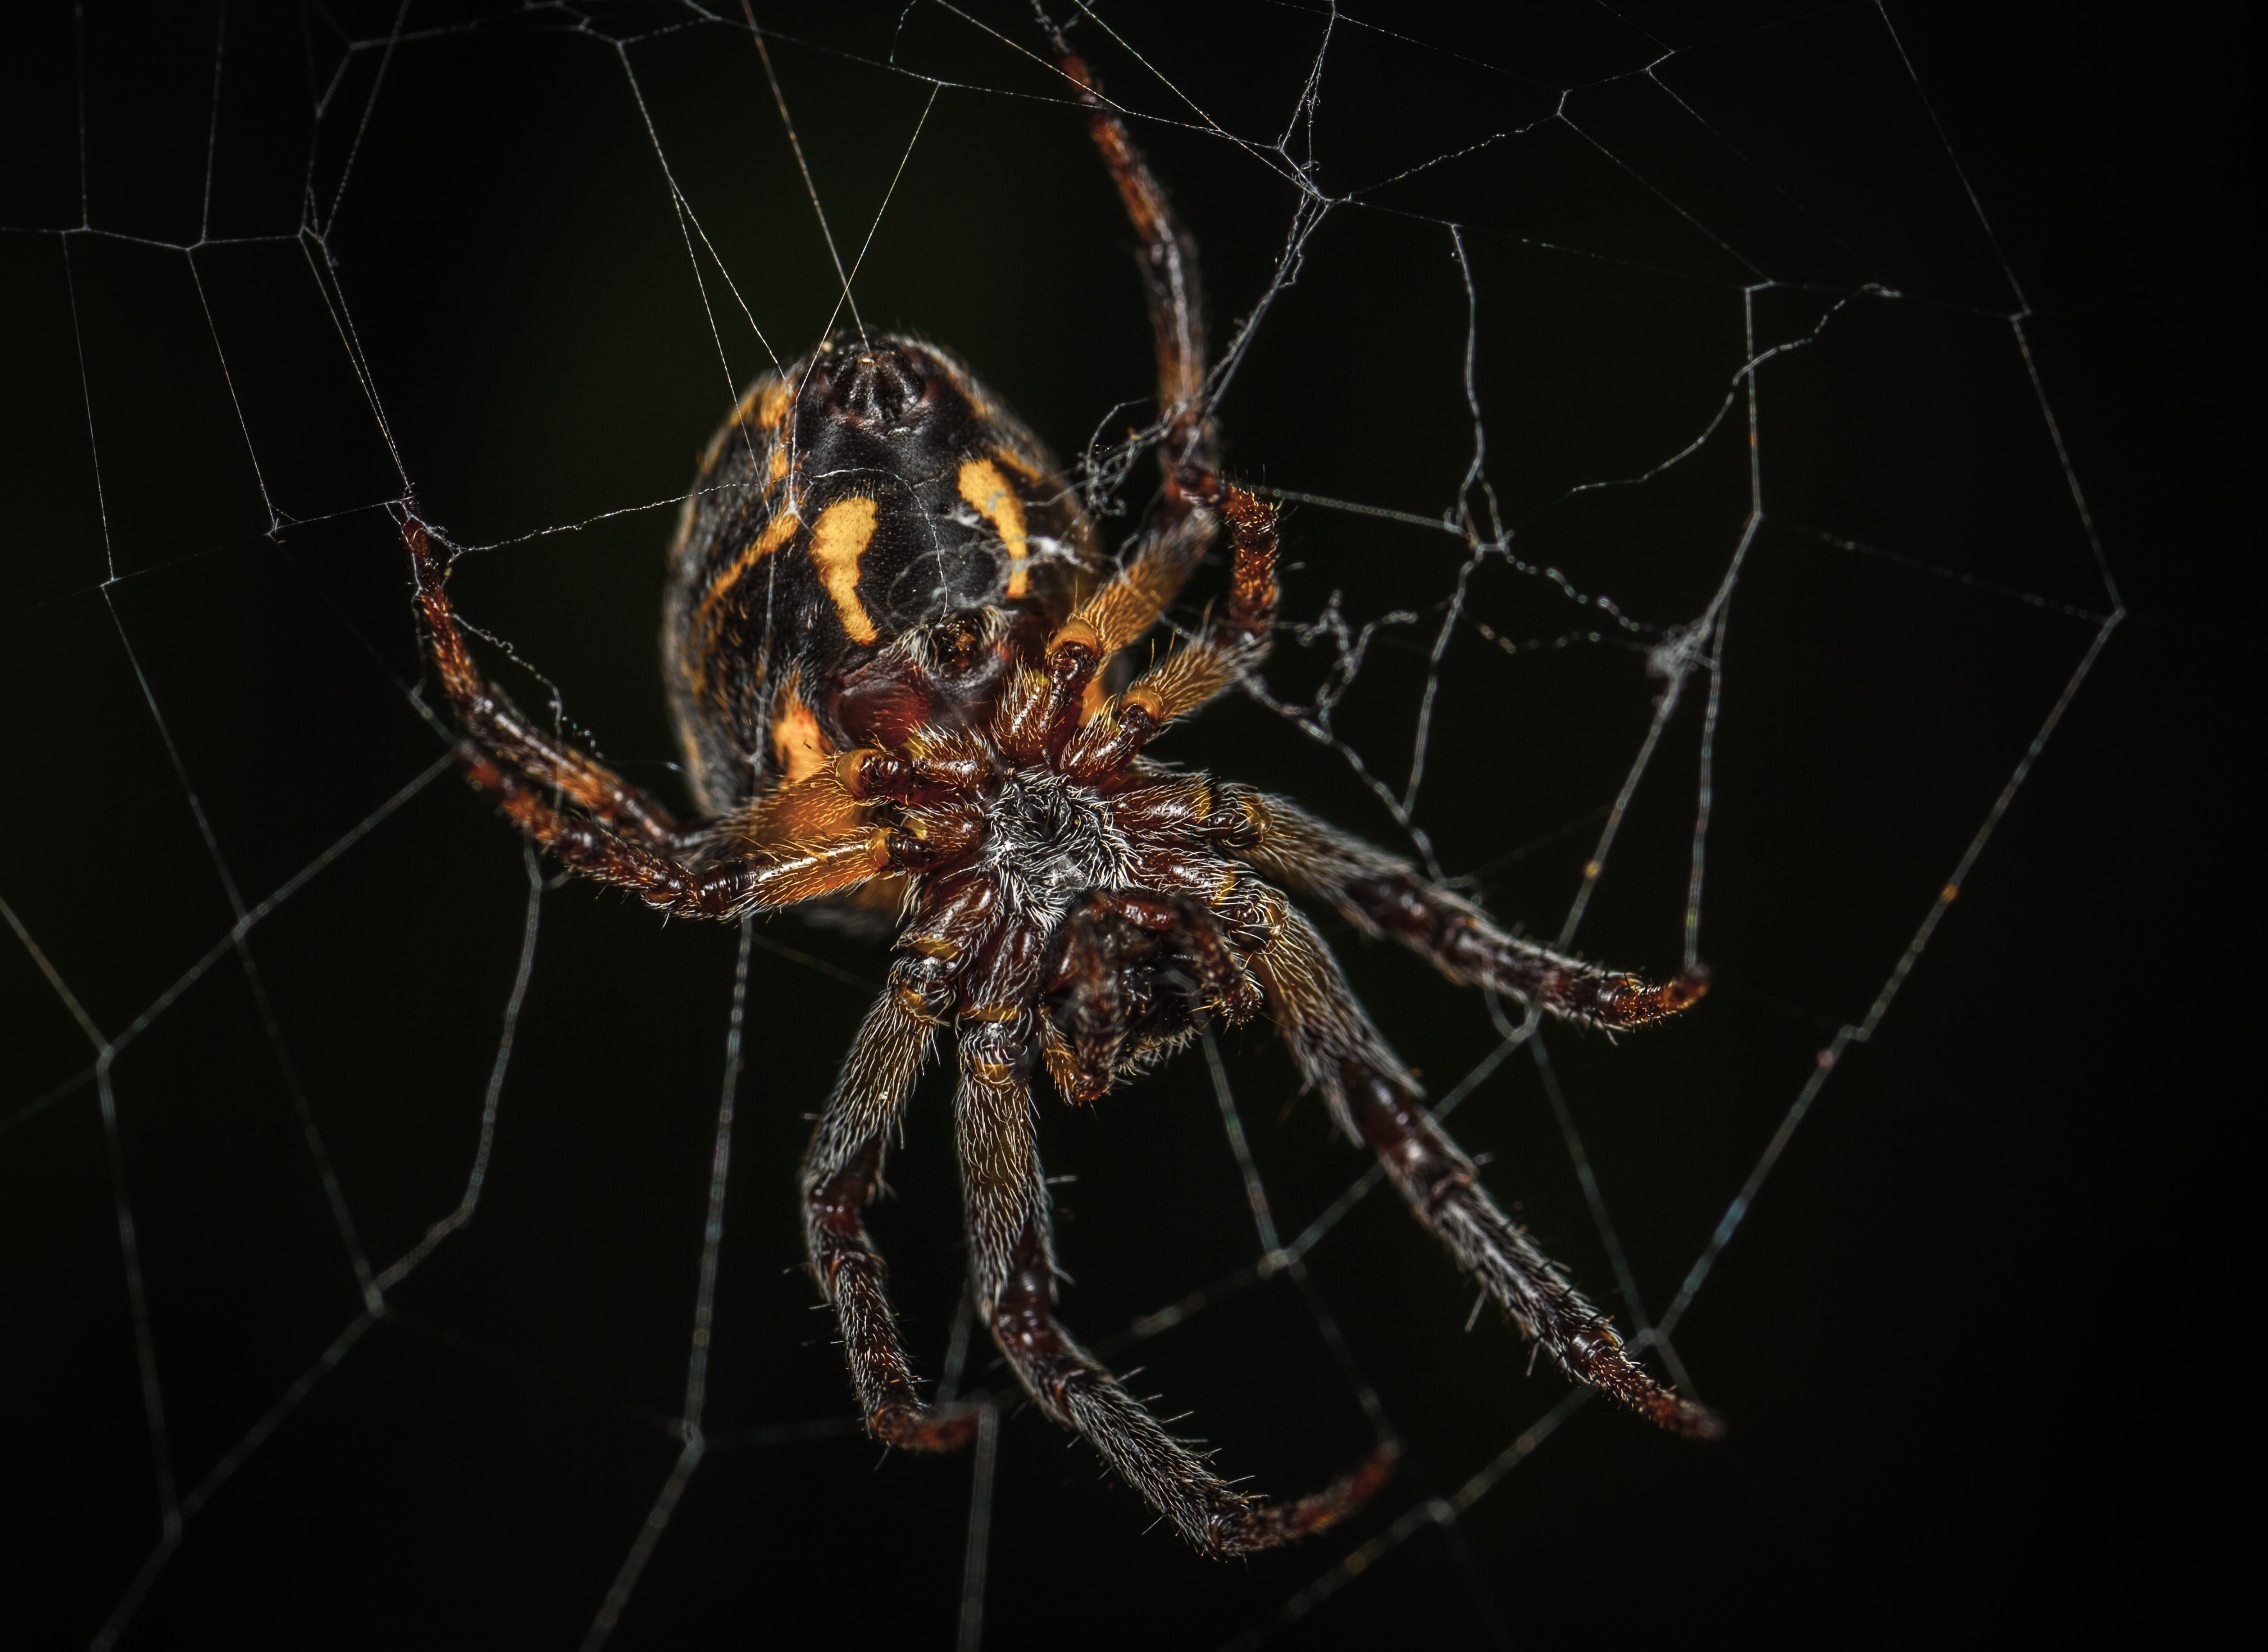 Brown barn spider in closeup photography